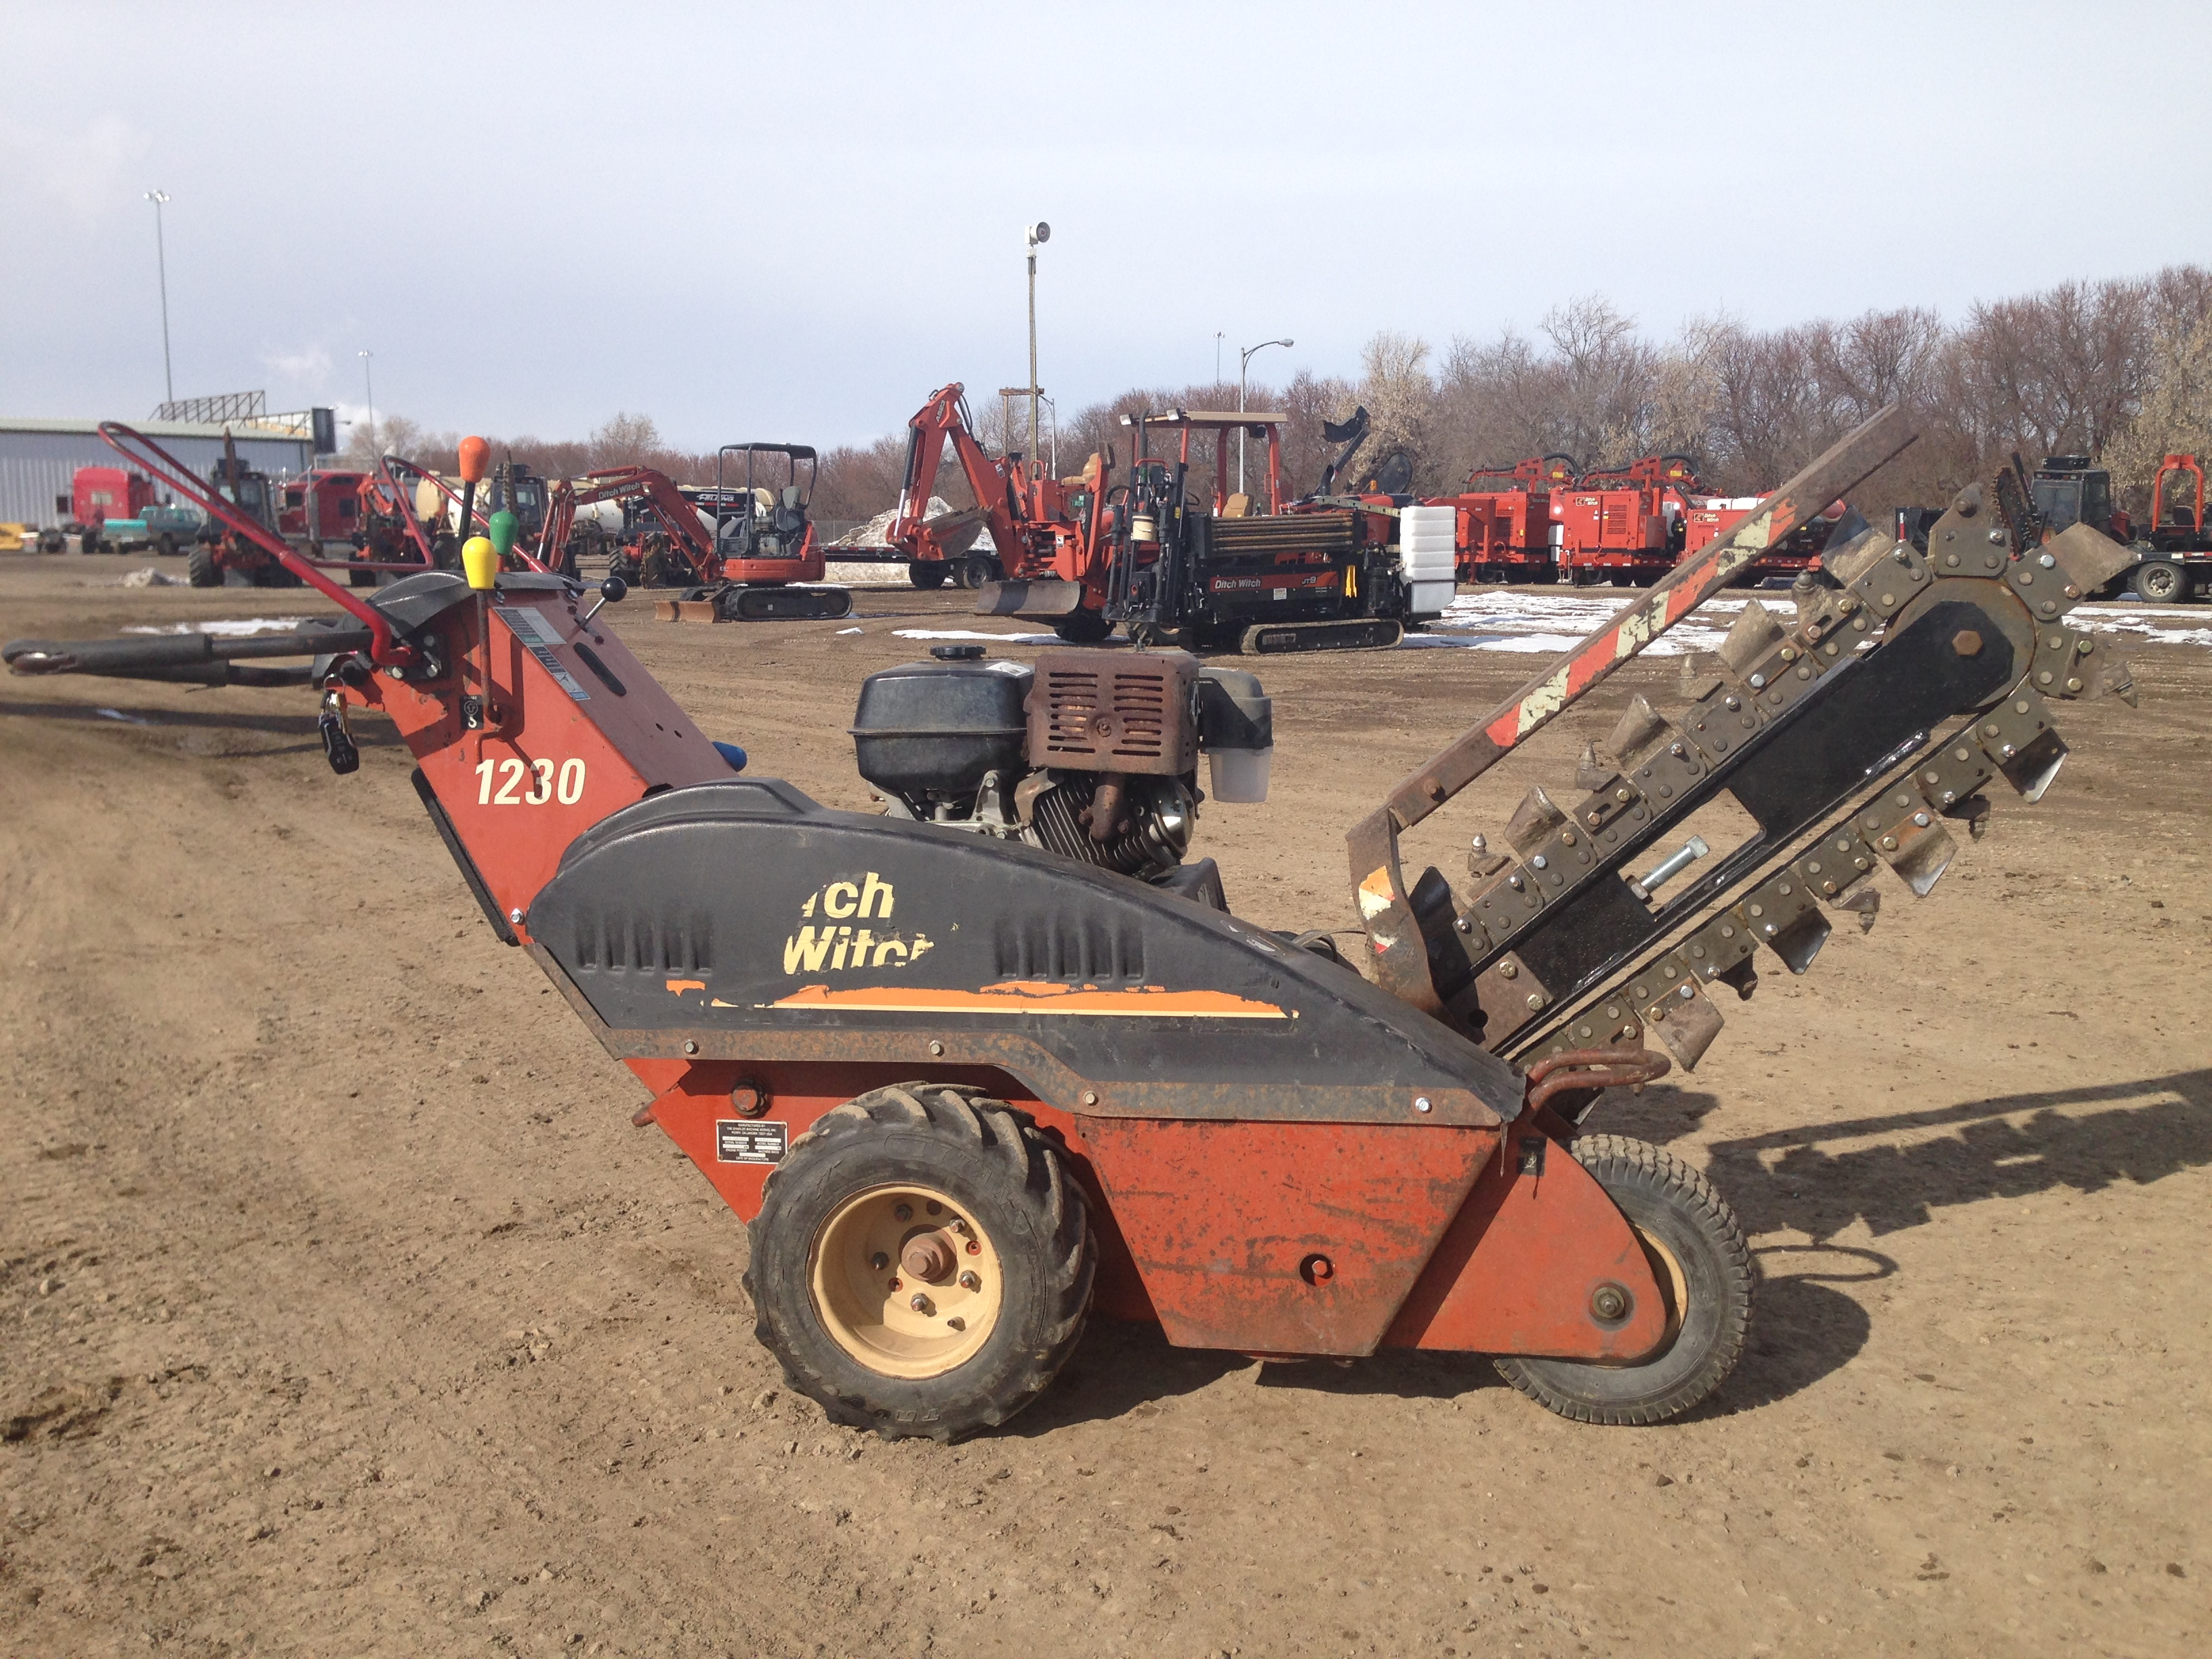 ditch witch directional drills excavators trenchers skid steers rh ditchwitchnd com Ditch Witch 1030 Ditch Witch 1030